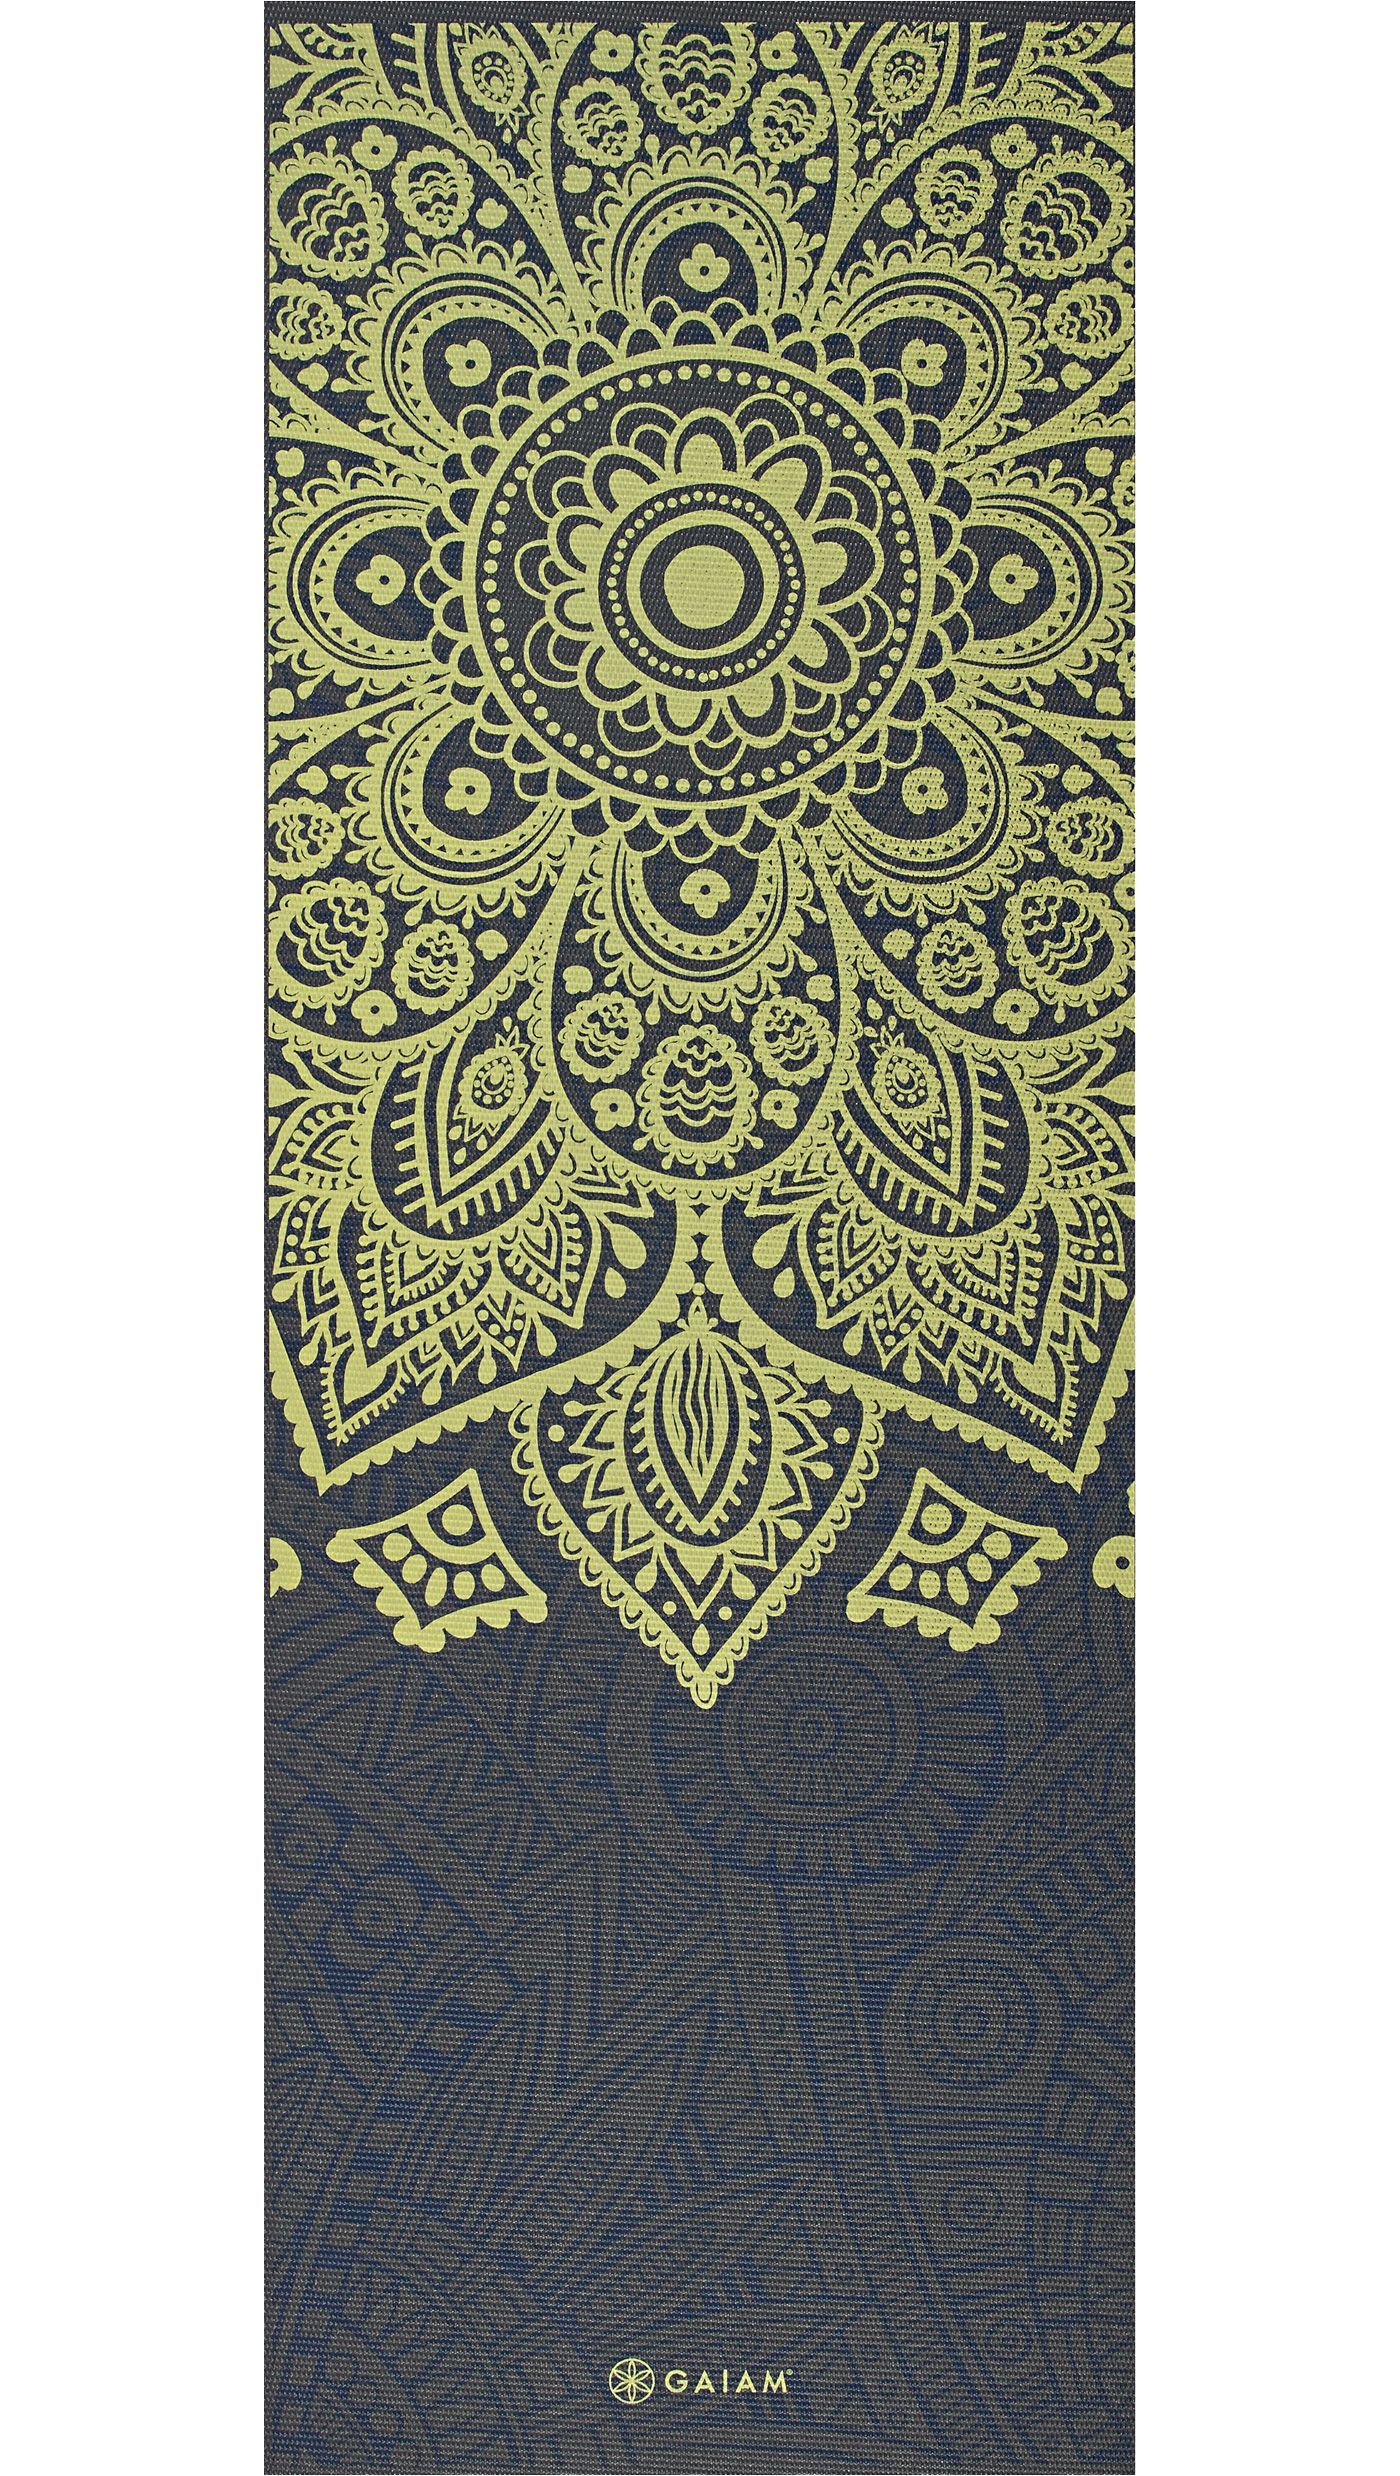 Gaiam 6mm Classic Yoga Mat